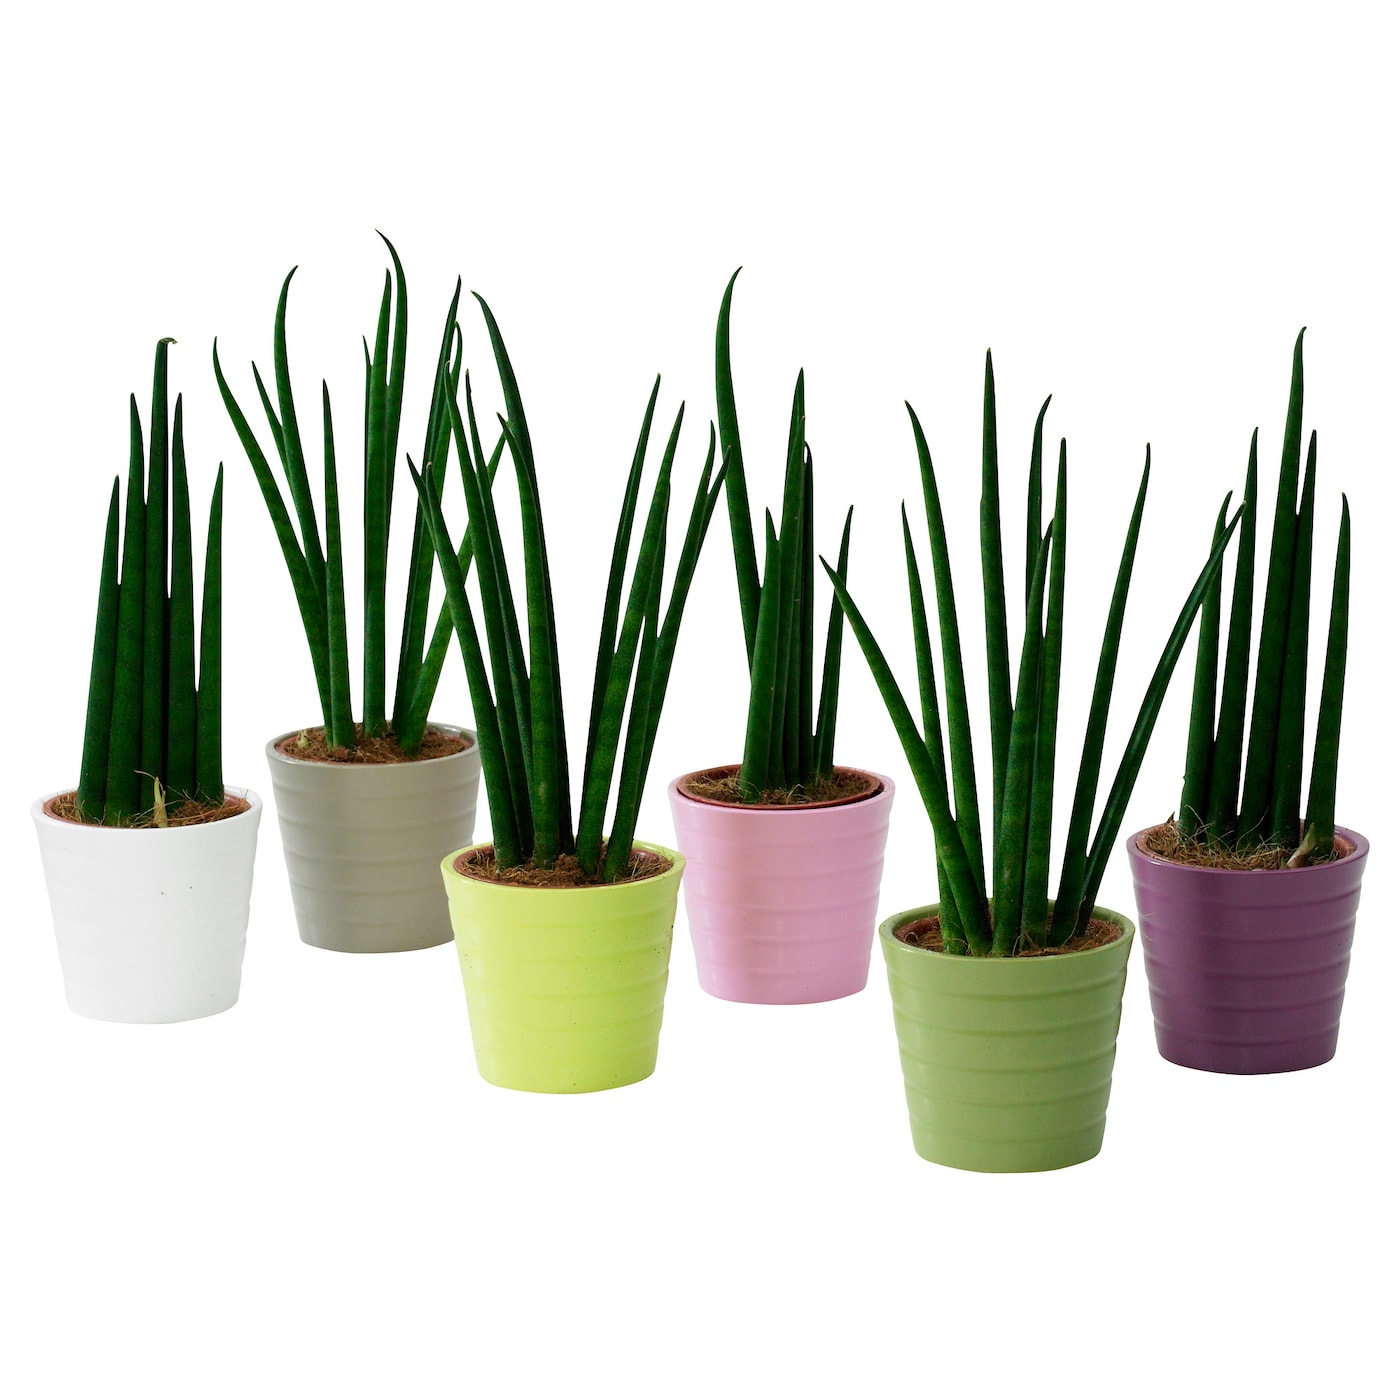 sansevieria pflanze mit bertopf bogenhanf ikea tipps vom einrichter. Black Bedroom Furniture Sets. Home Design Ideas